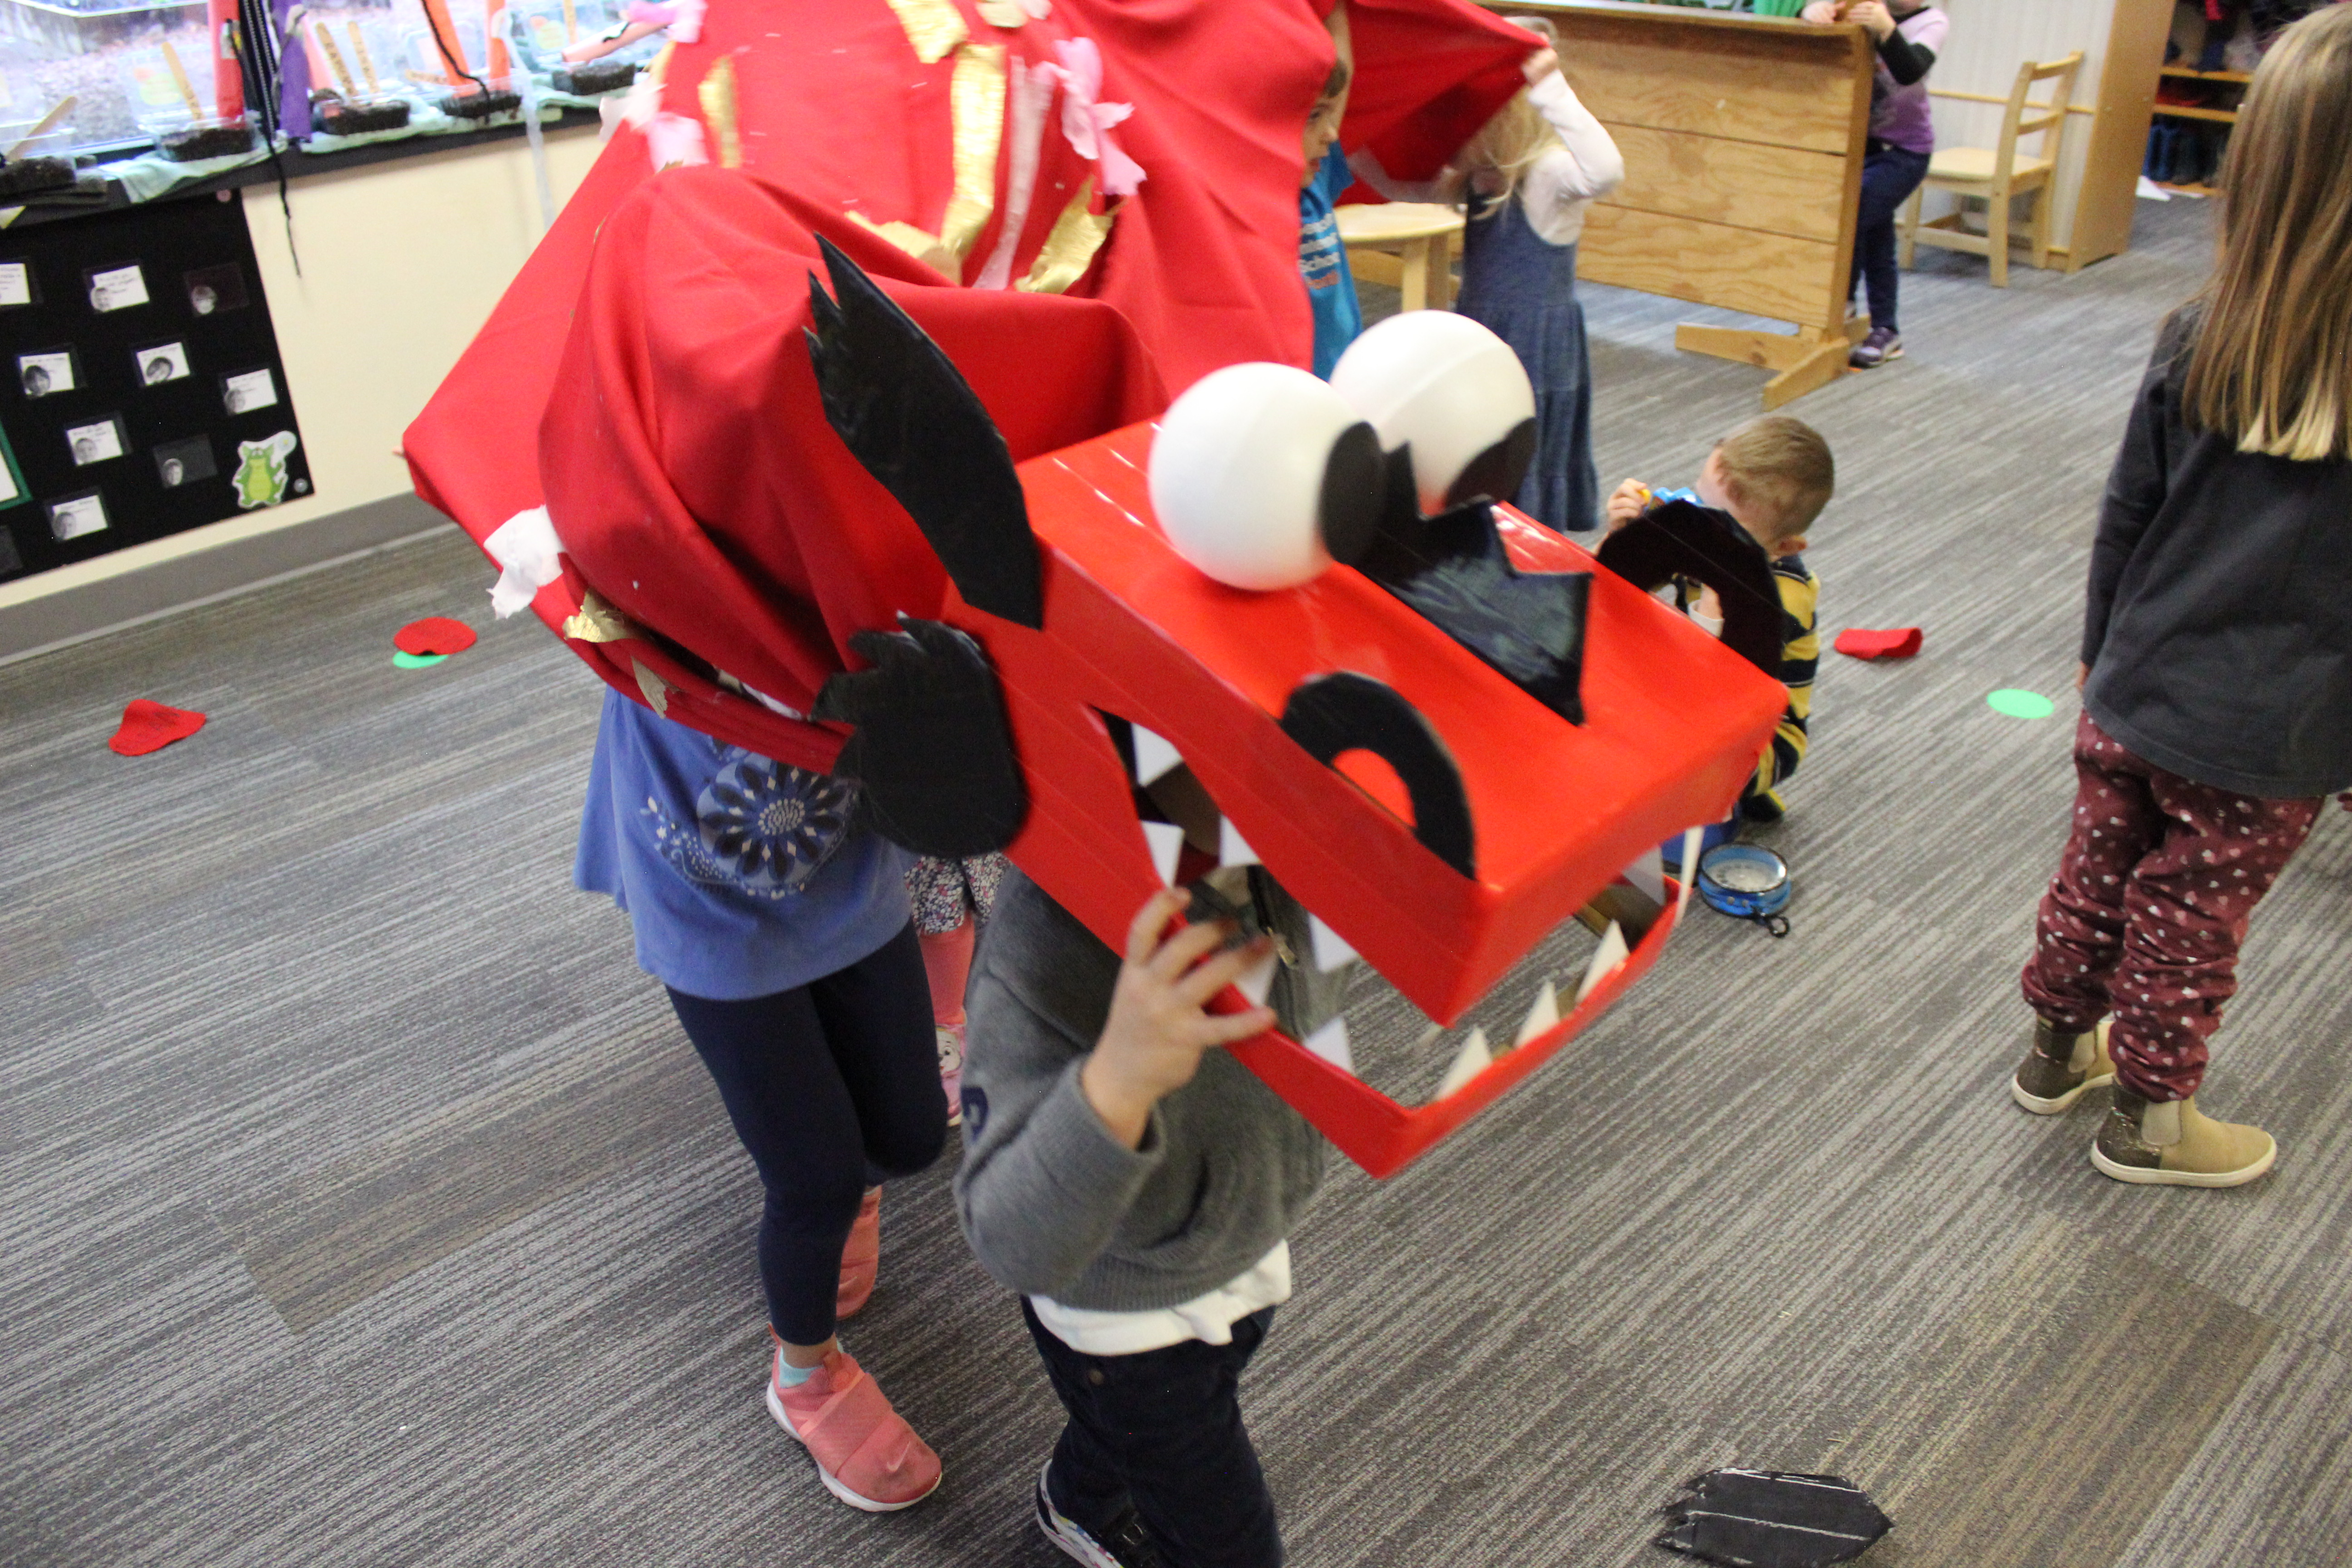 Preschool students pretend to be a dragon underneath a homemade, red dragon for Chinese New Year